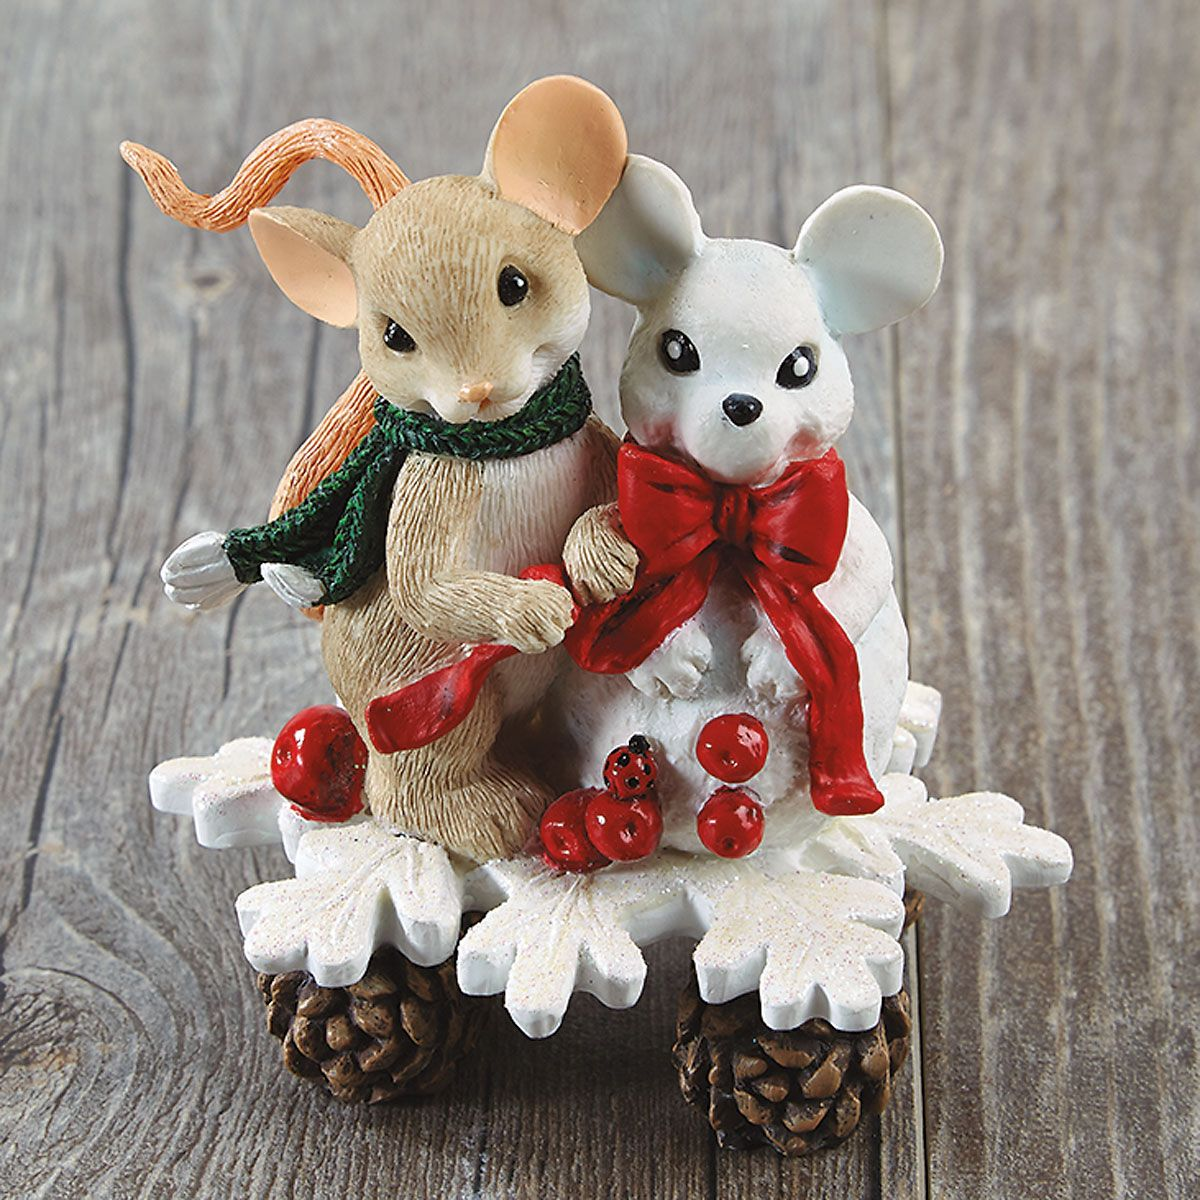 So Happy to Share The Journey with You Figurine by Charming Tails®